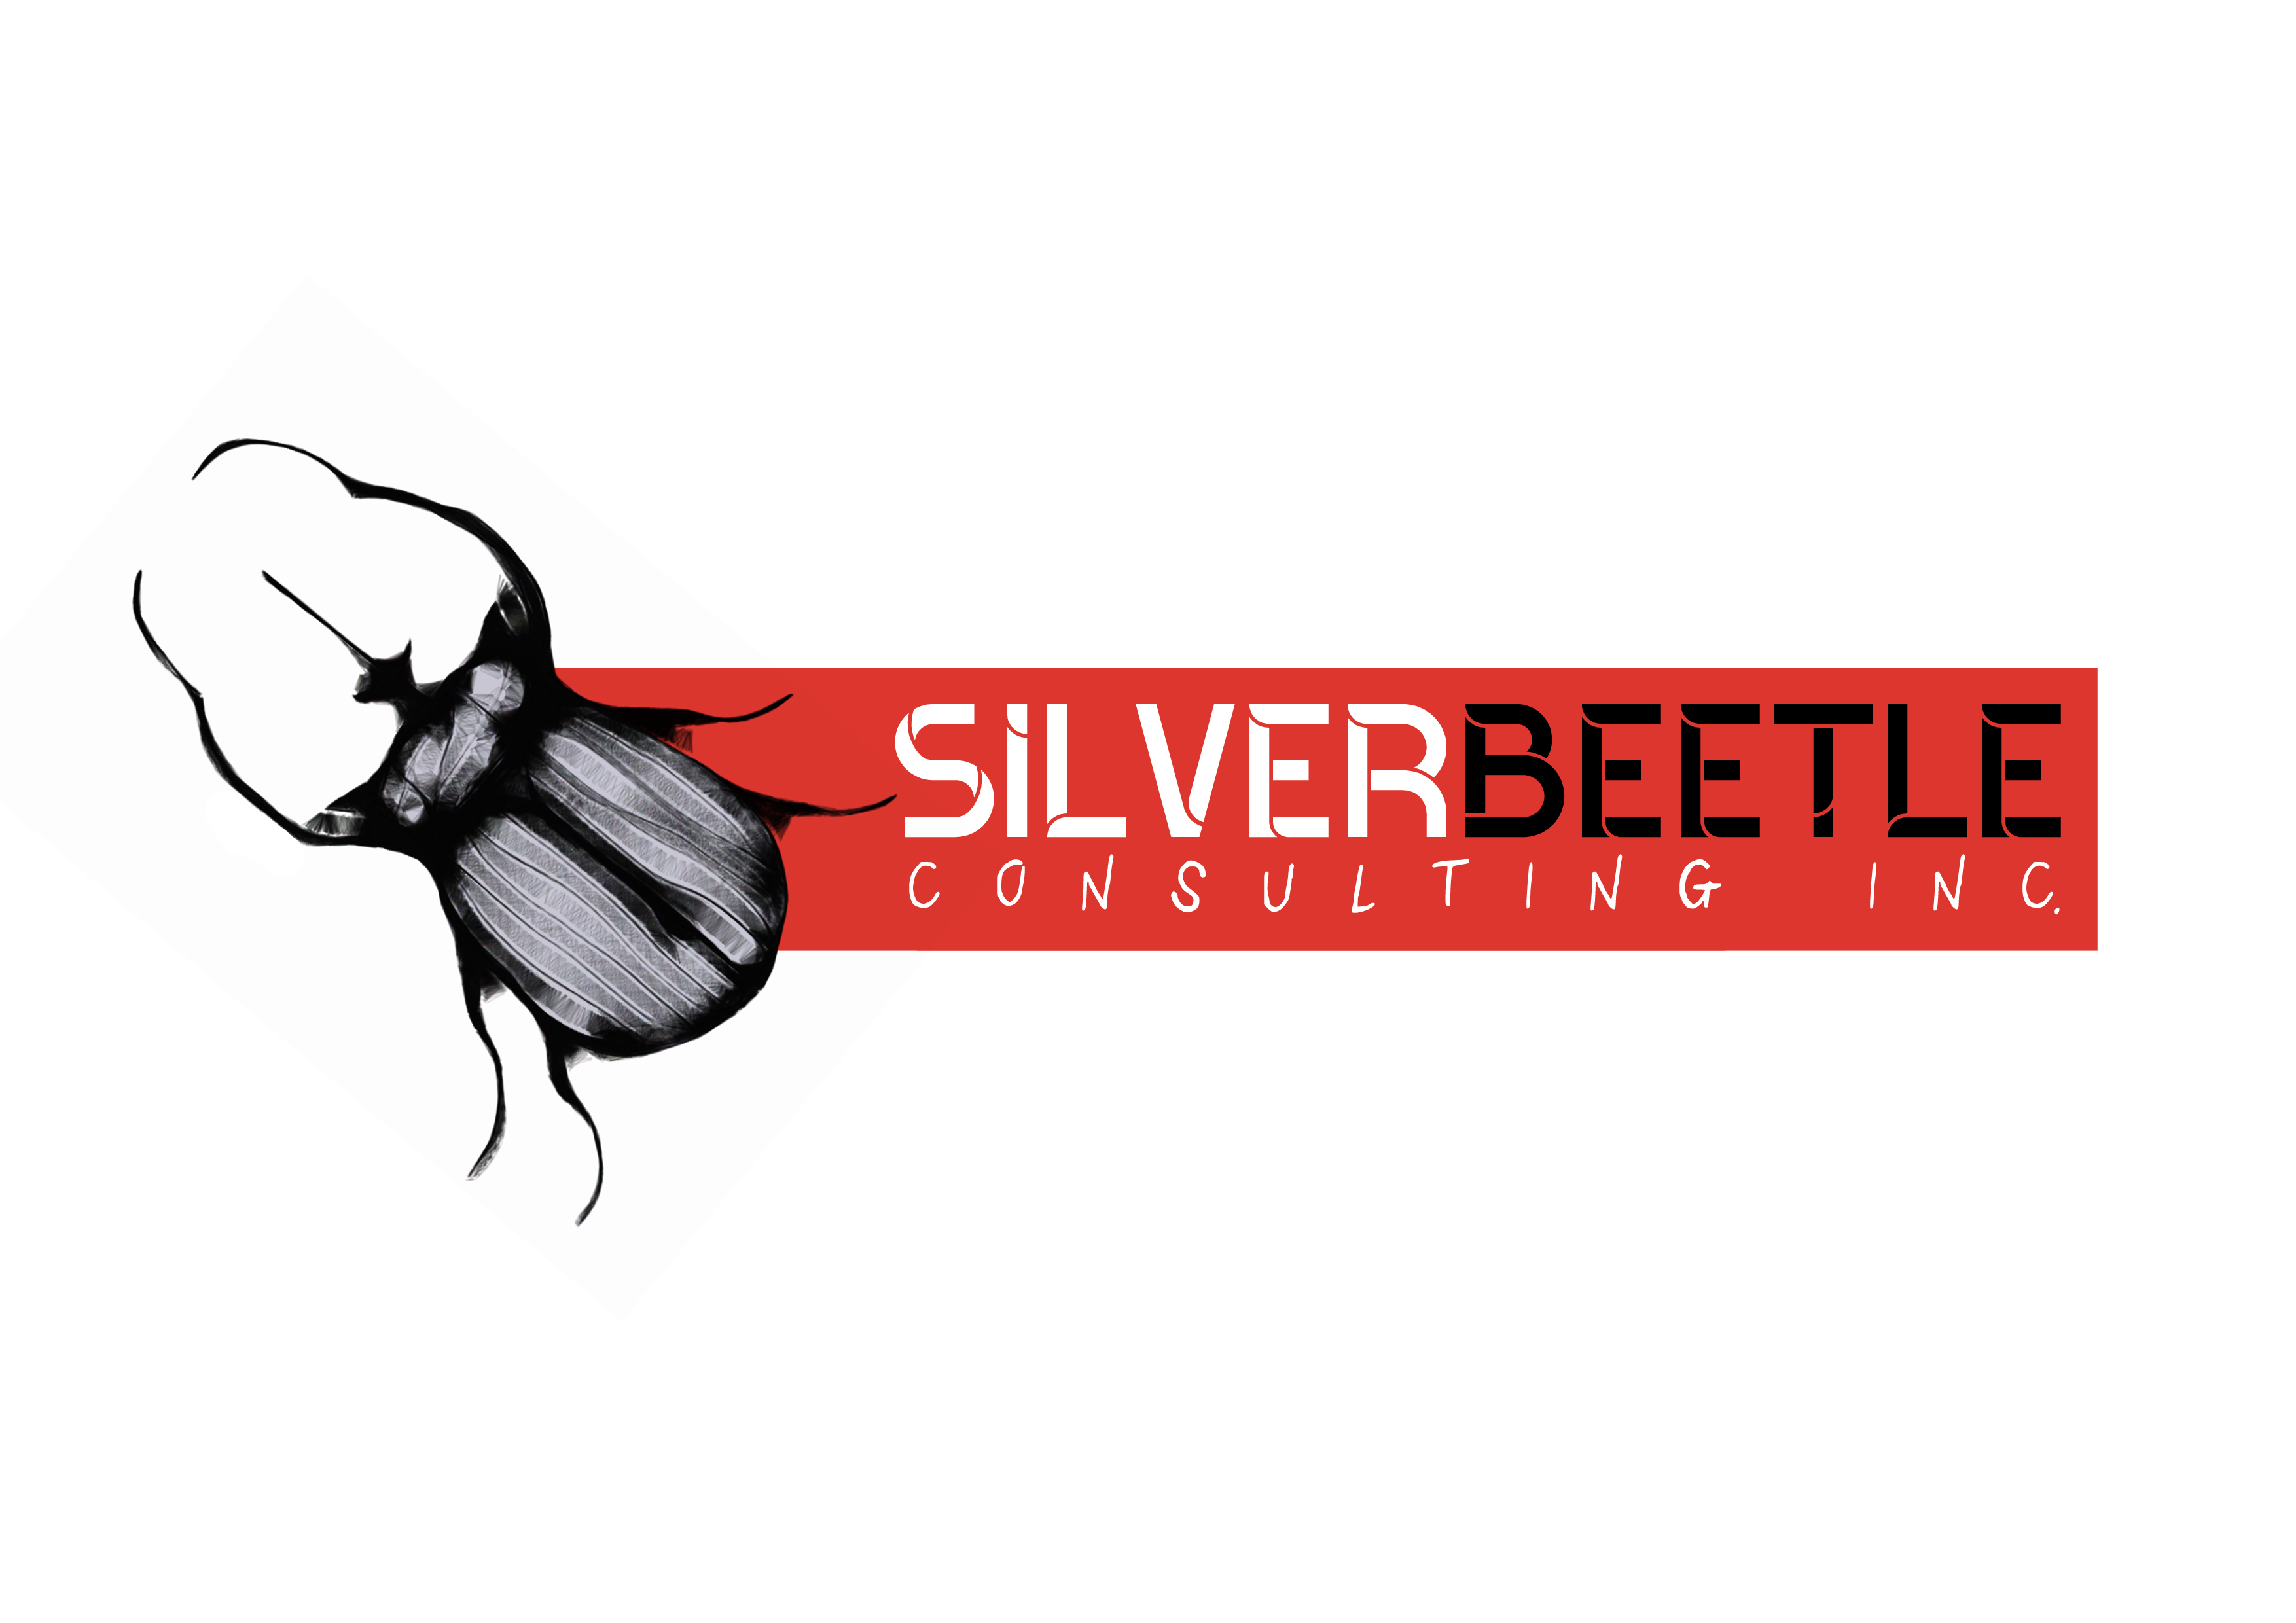 Logo Design by Private User - Entry No. 26 in the Logo Design Contest Silver Beetle Consulting Inc. Logo Design.